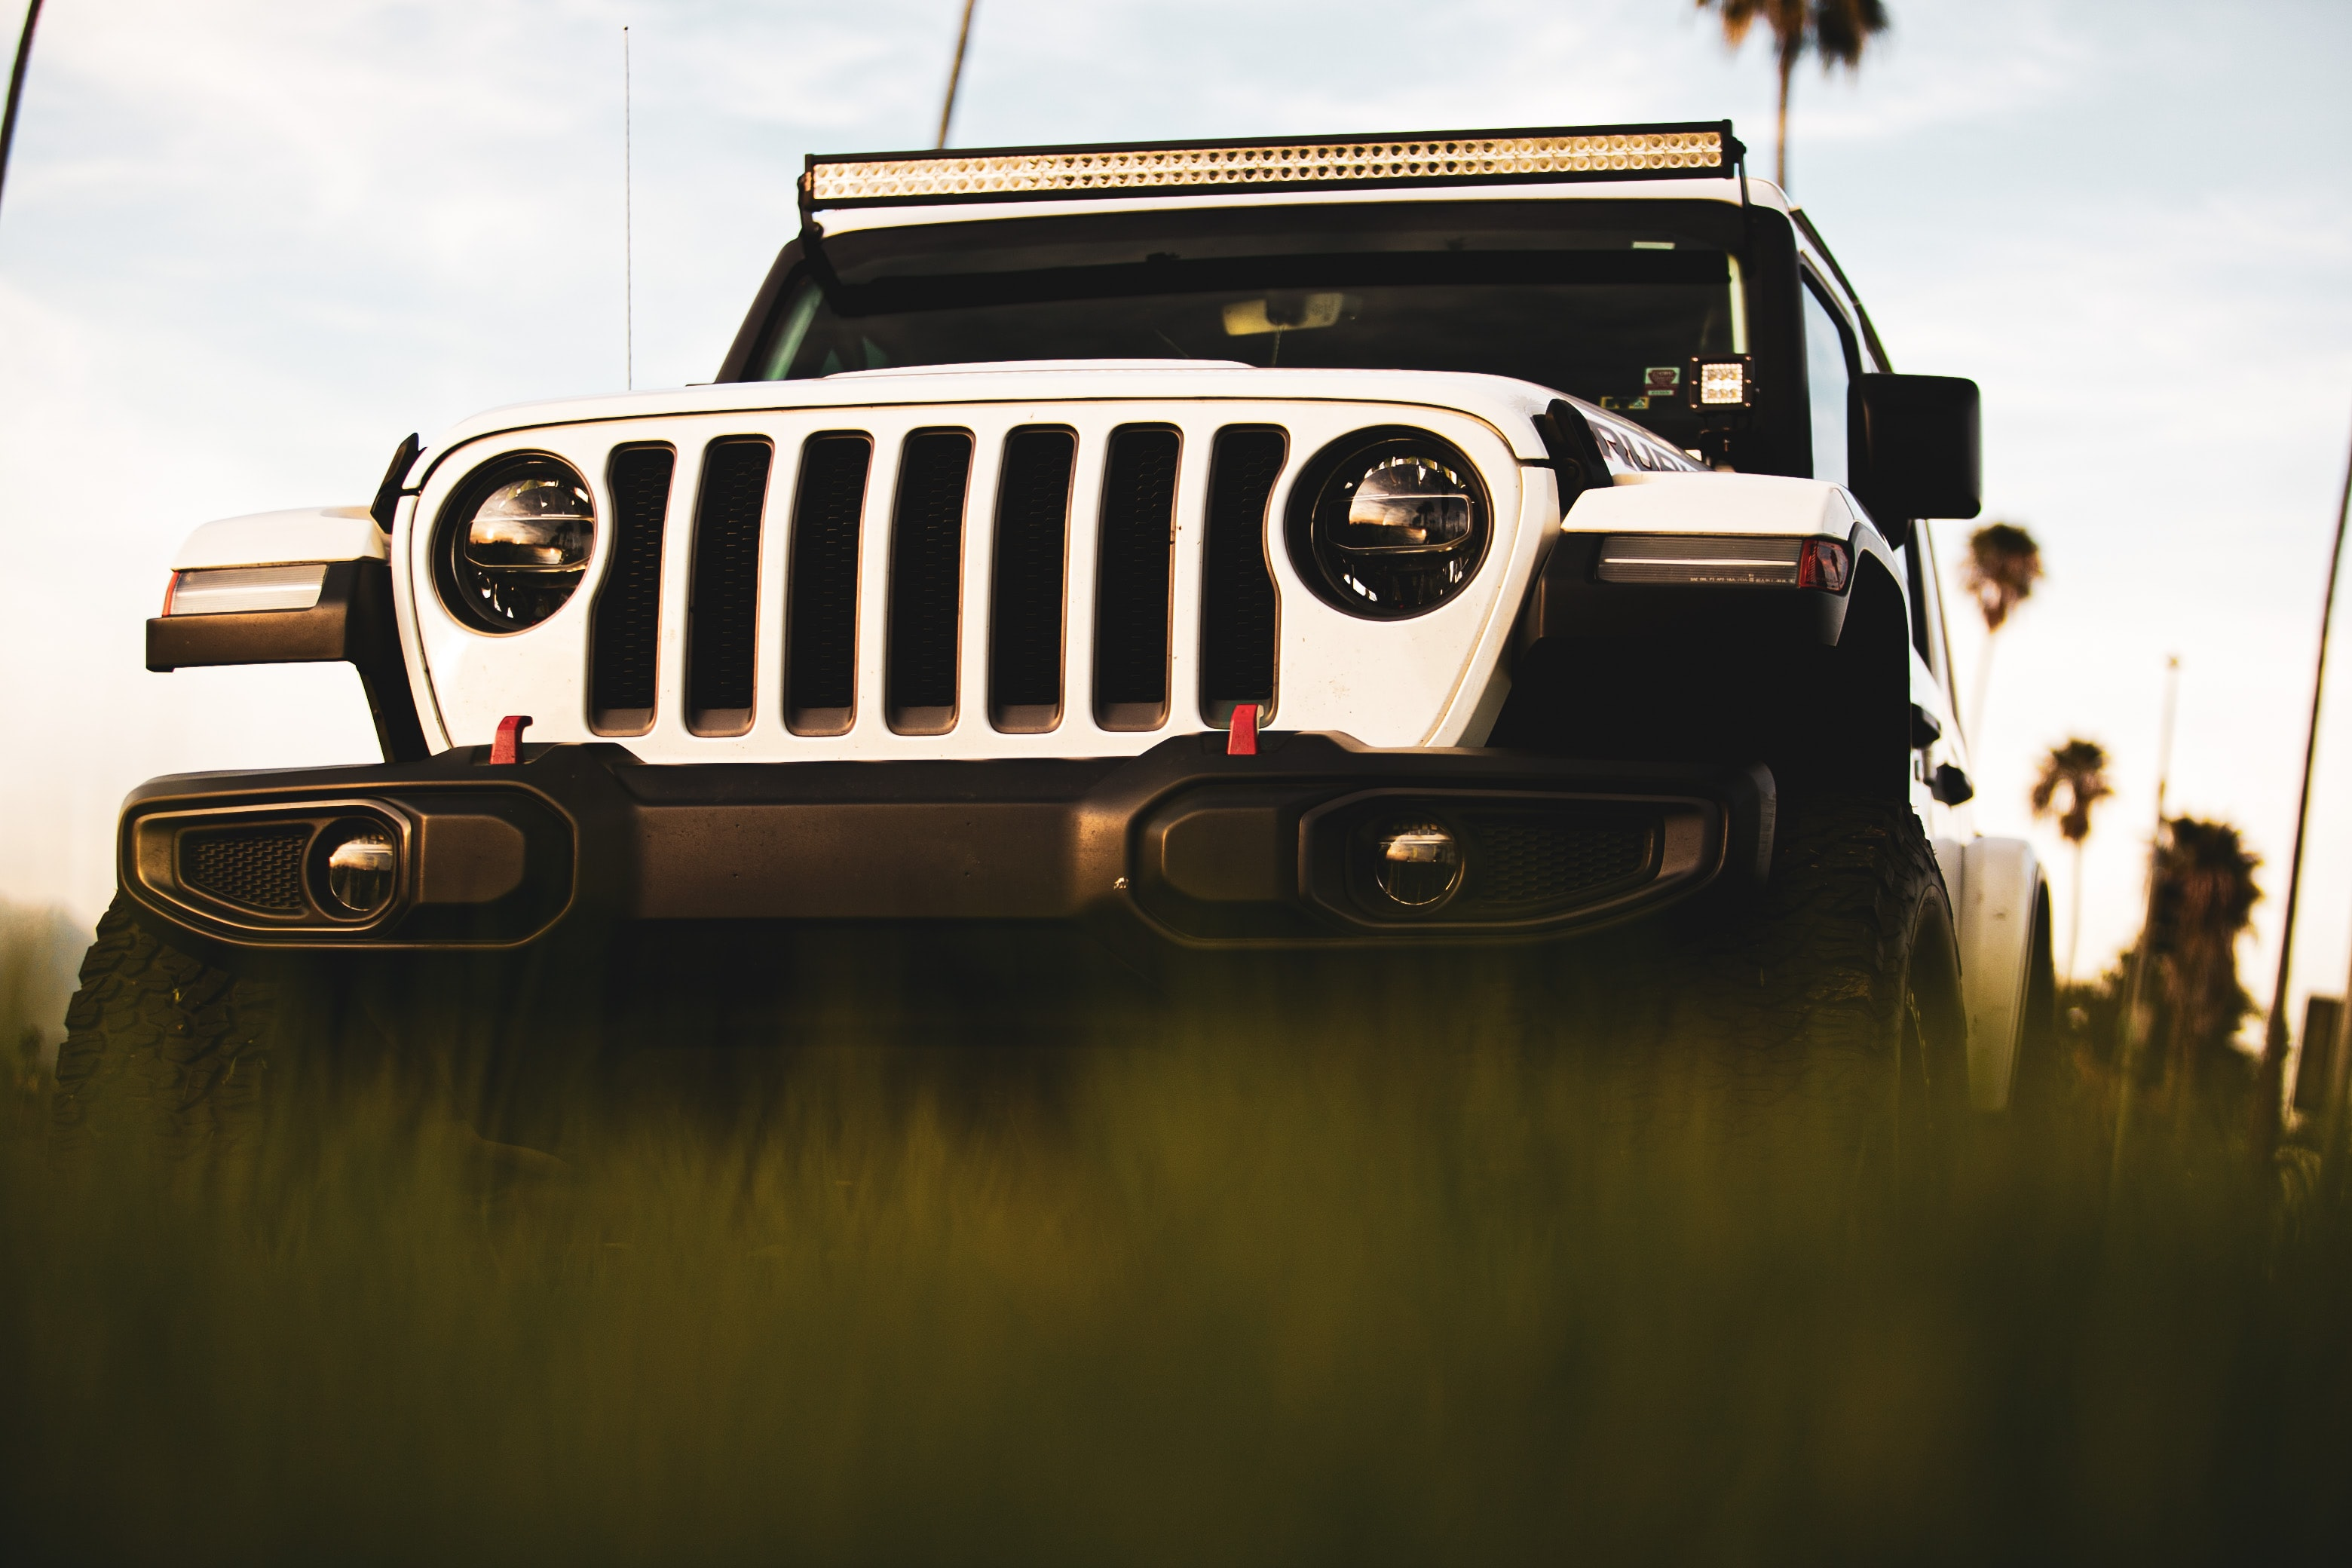 Featured image of post Jeep Background For Editing Free png imagesmillions of png images backgrounds and vectors for free download